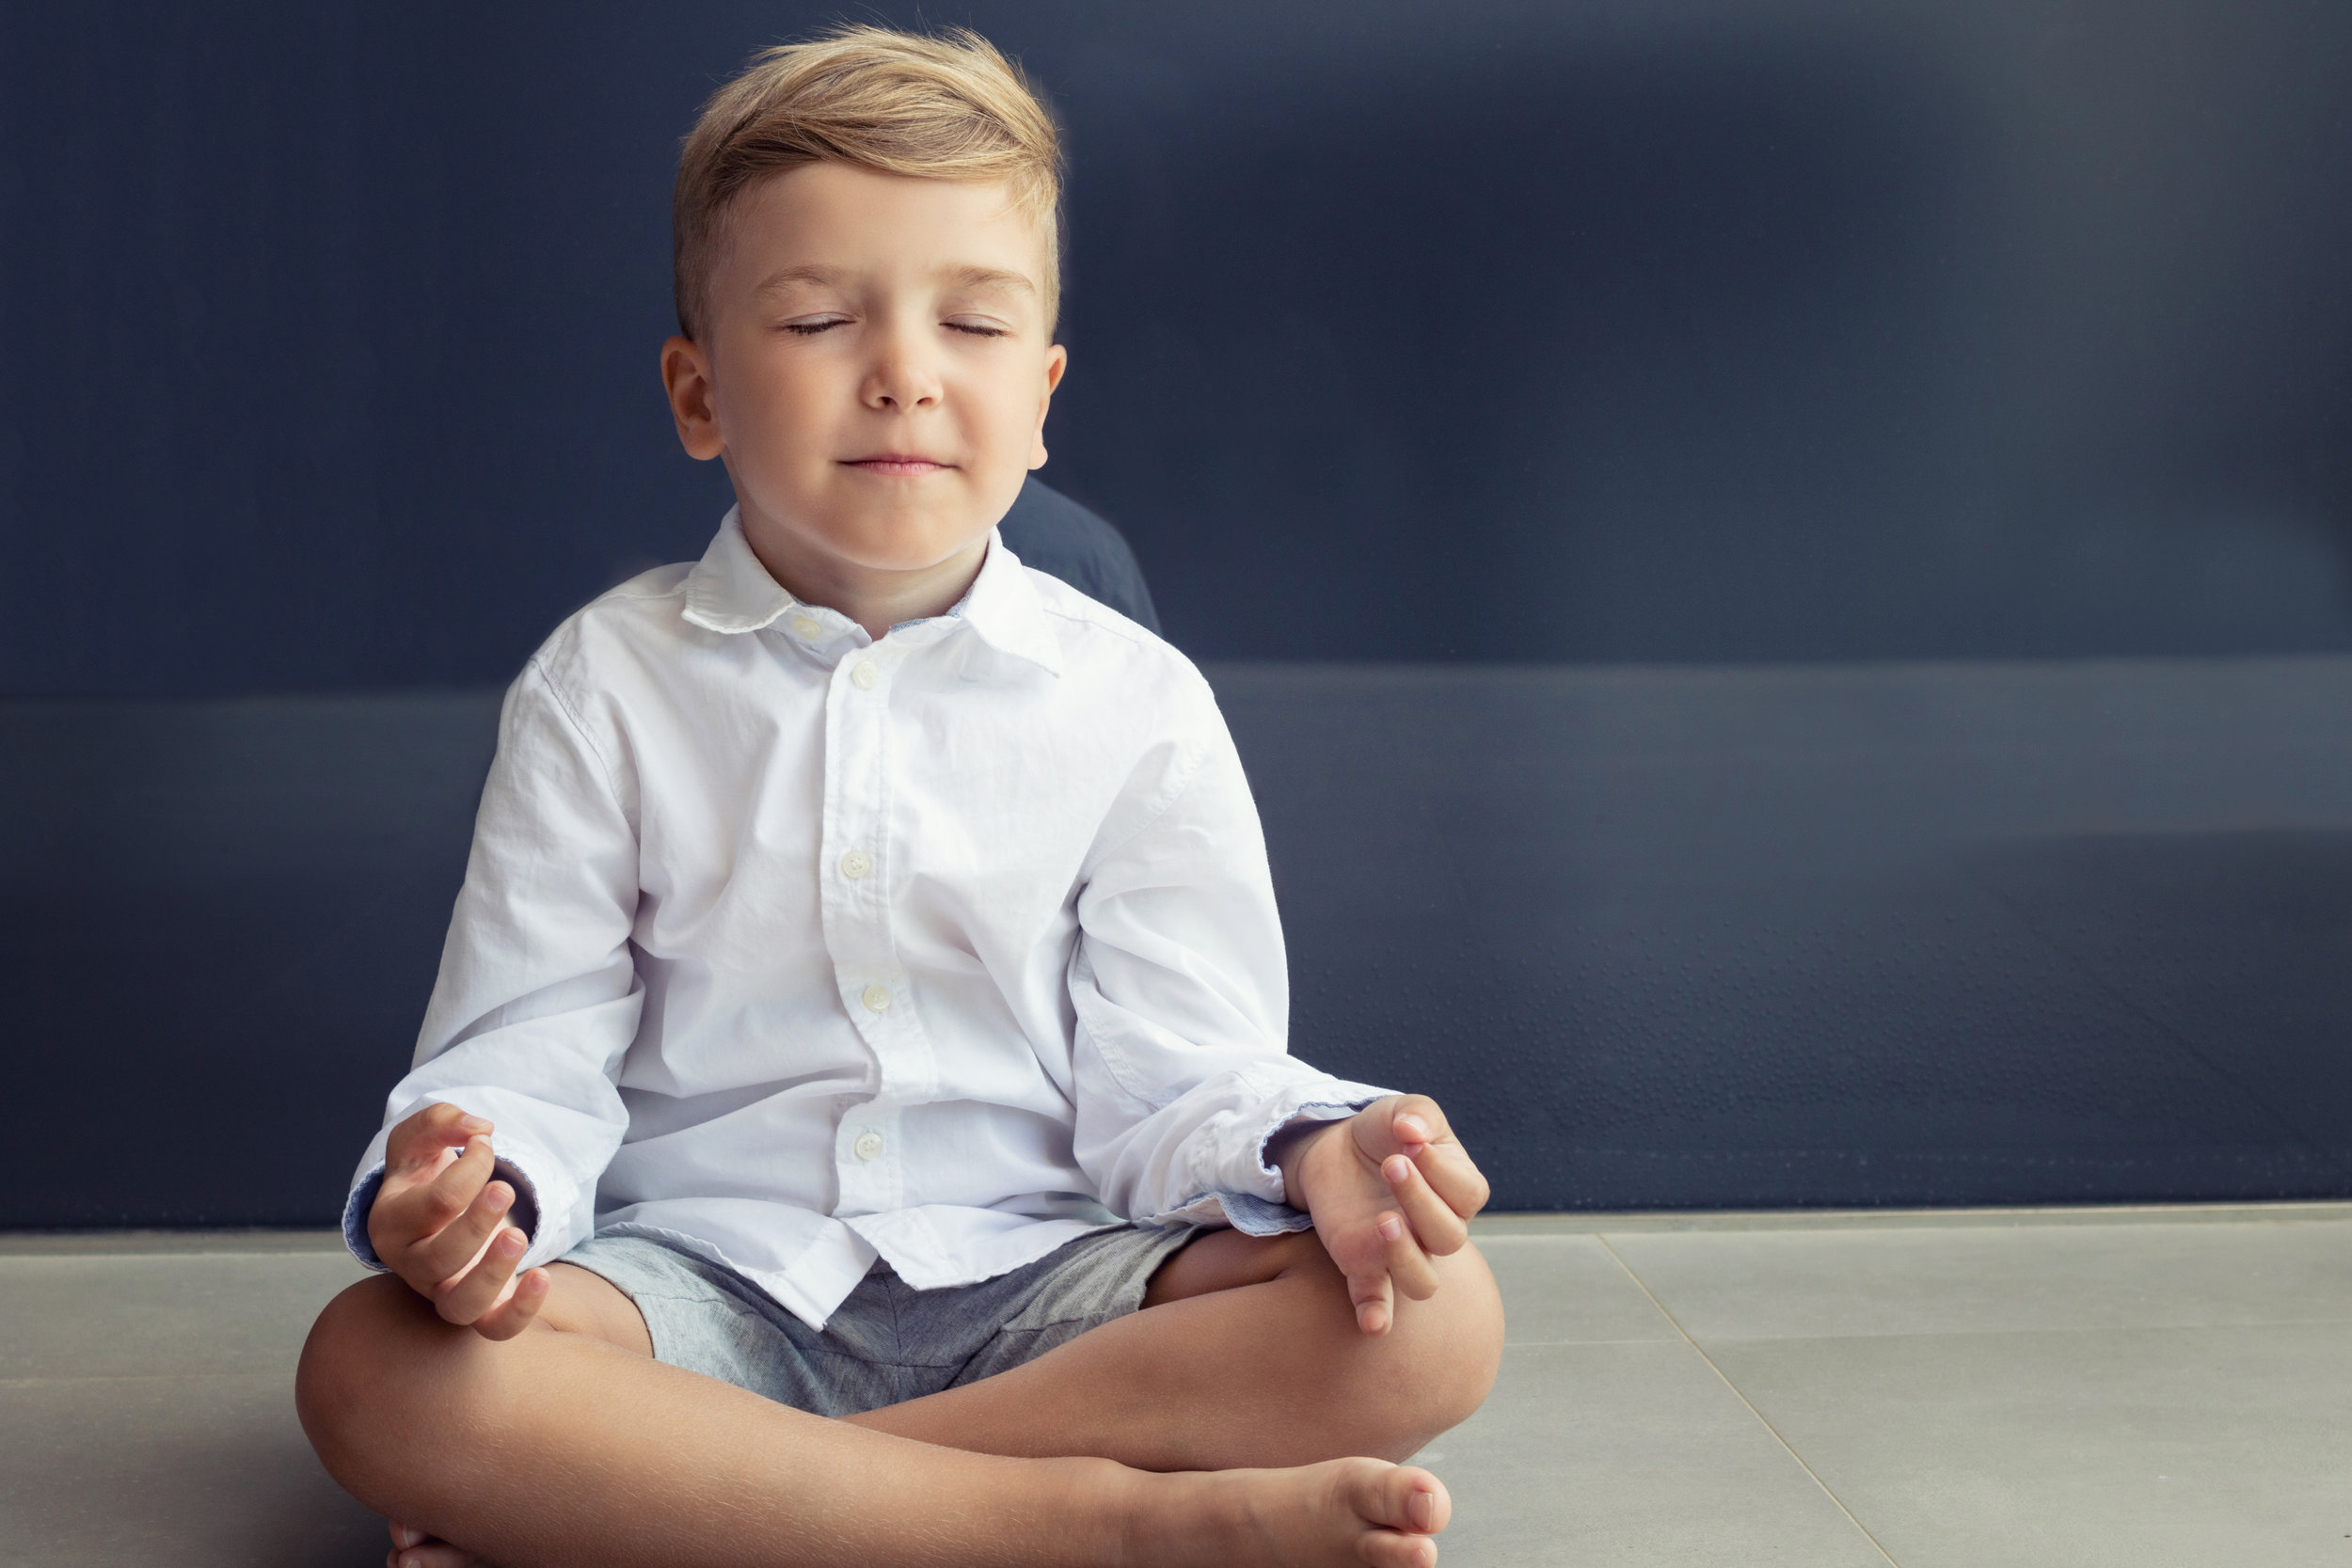 Meditation    Children benefit tremendoulsy from  meditation .  They are the seeds of our future and with a short daily practice they can create a brighter future not only for themselves but for all of us. Calming the mind, learning to let go of emotion, and create a life they want are a recipe for a healthy balanced child. With all the stress from school, activities, modern technologies and frequencies, family issues, and just the world today kid's can get pretty stressed and full of anxiety. Teaching children to slow down and go within and be present is a tool that can help them for a lifetime. The benefits of meditation help them to focus, reflect, have empathy, connect with themselves, and develop their intuition naturally. Meditation is their home base, their center to return to when their feeling out of sorts. We practice different short meditations that help the child connect with themselves. .  When: Every 3rd Sunday of the month 3:30pm-4:15pm  Cost $20